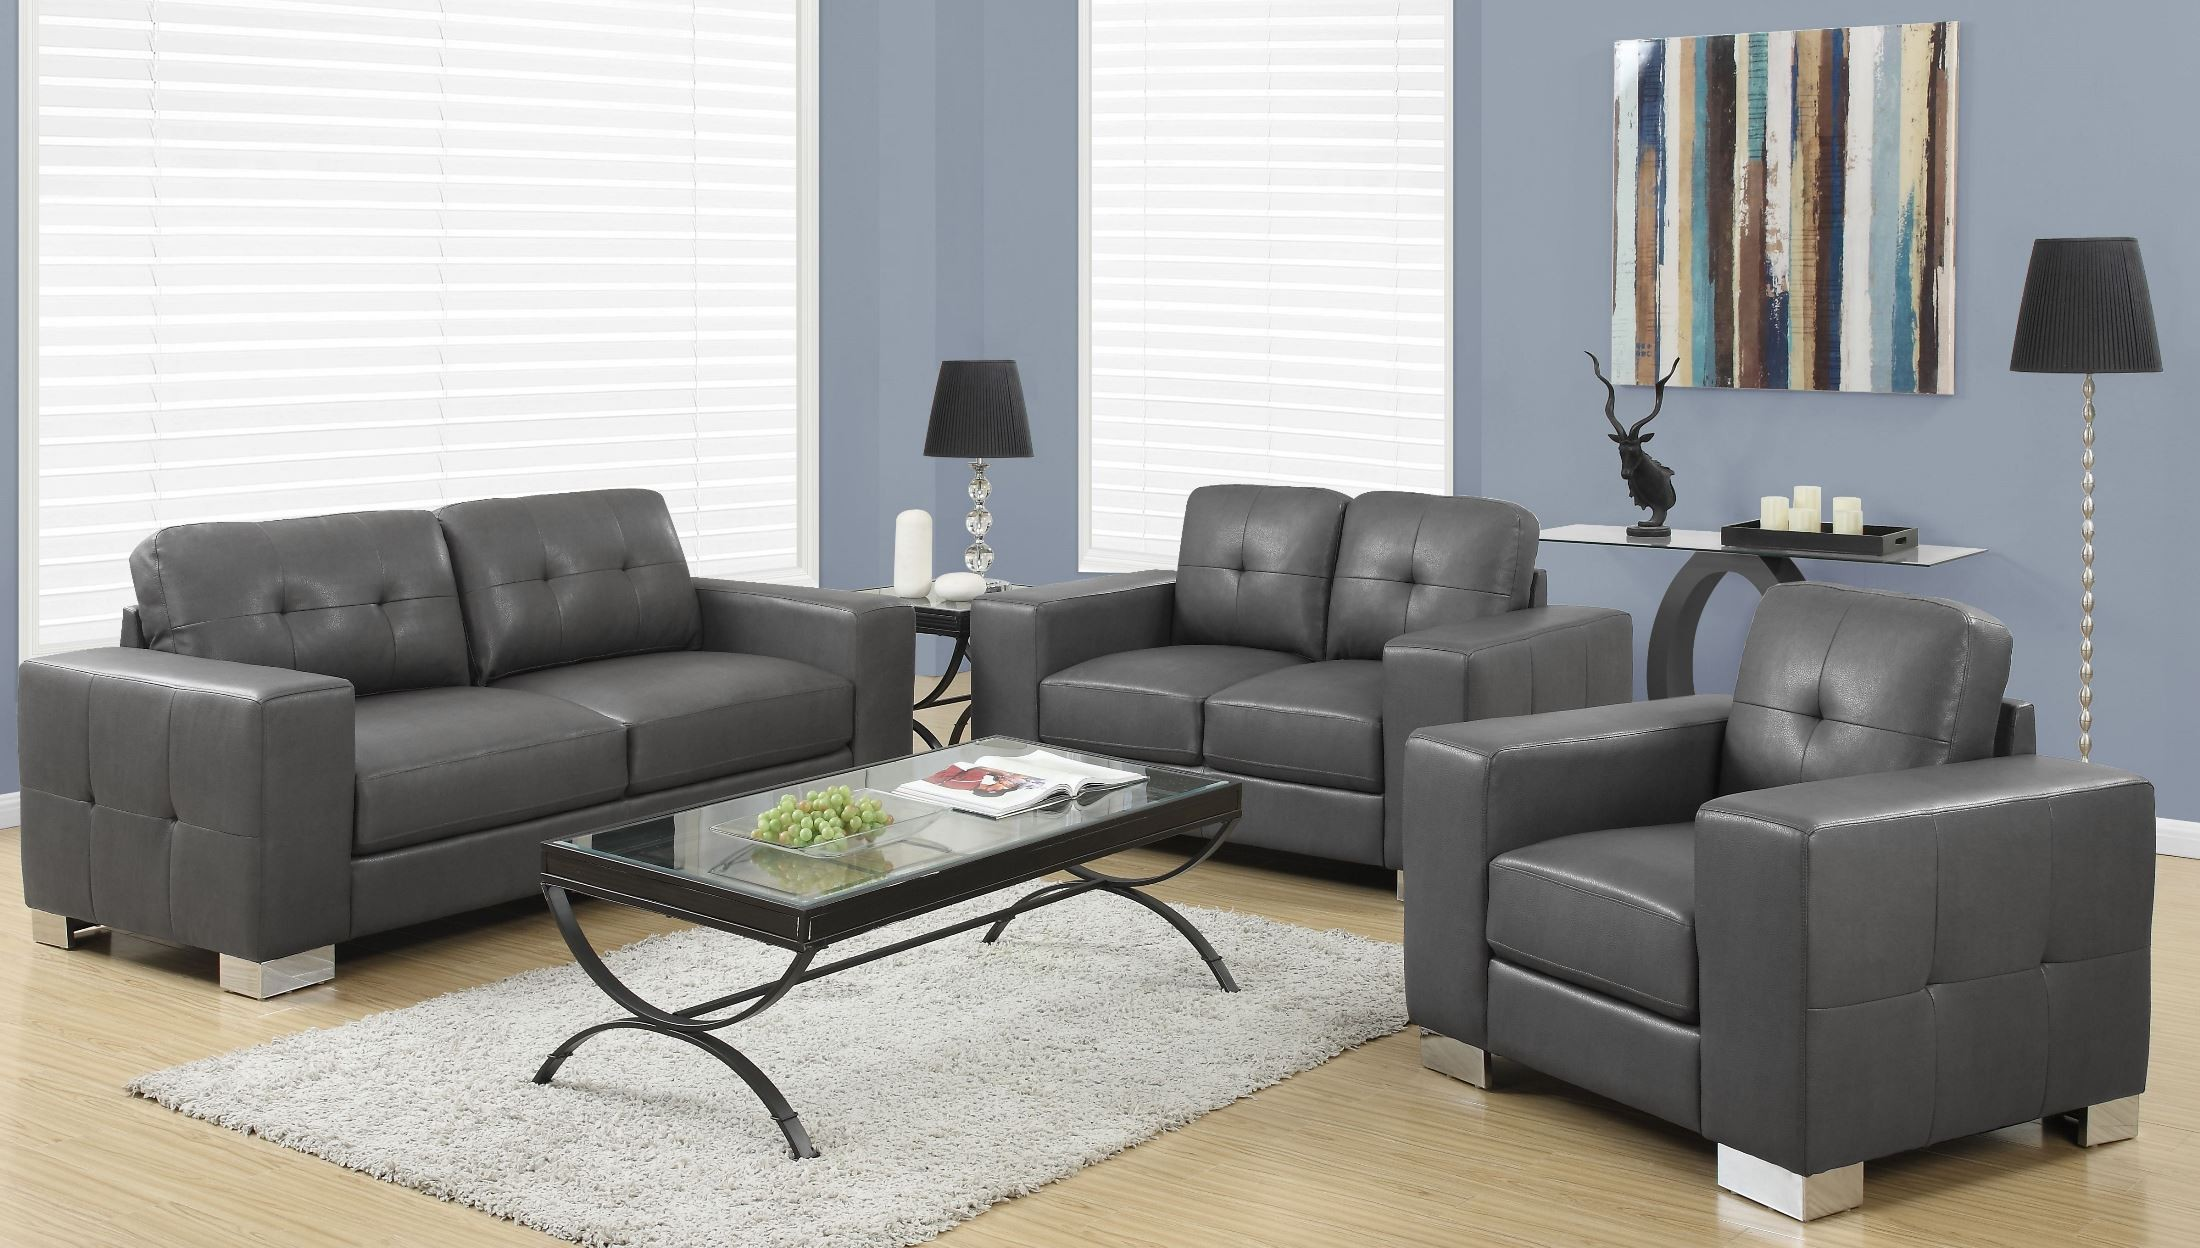 8223gy charcoal gray bonded leather living room set 8223gy monarch